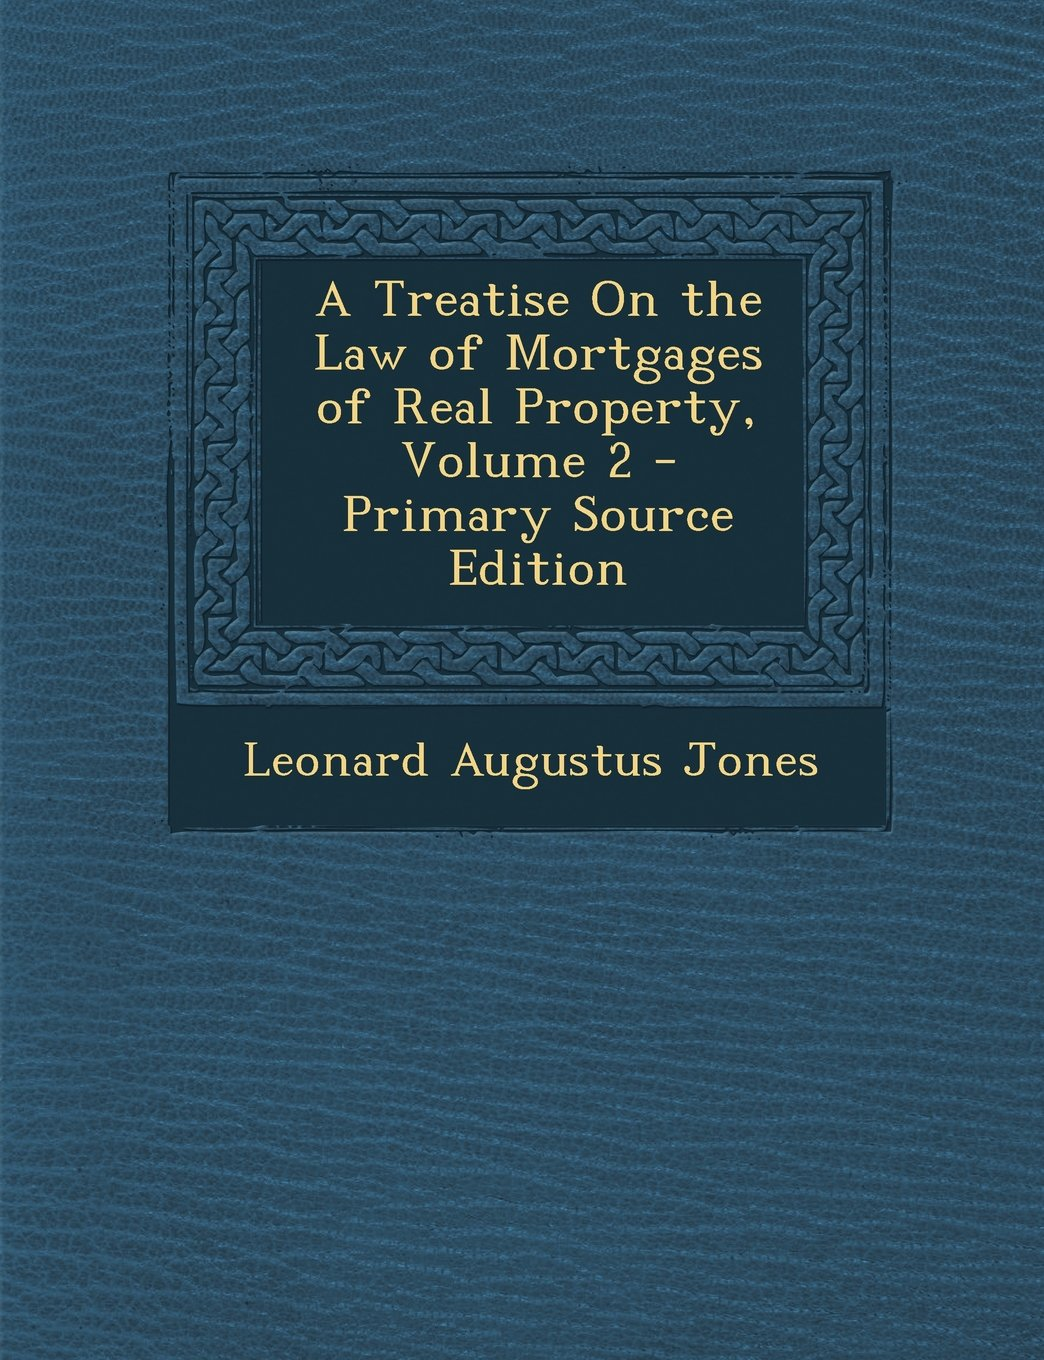 Download Treatise on the Law of Mortgages of Real Property, Volume 2 pdf